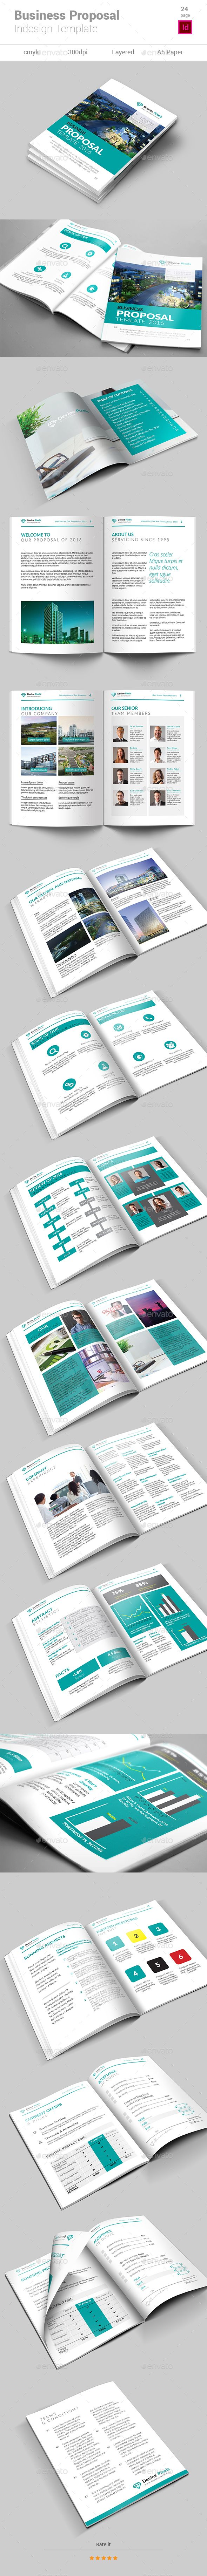 Business Proposal Template InDesign INDD. Download here: https ...